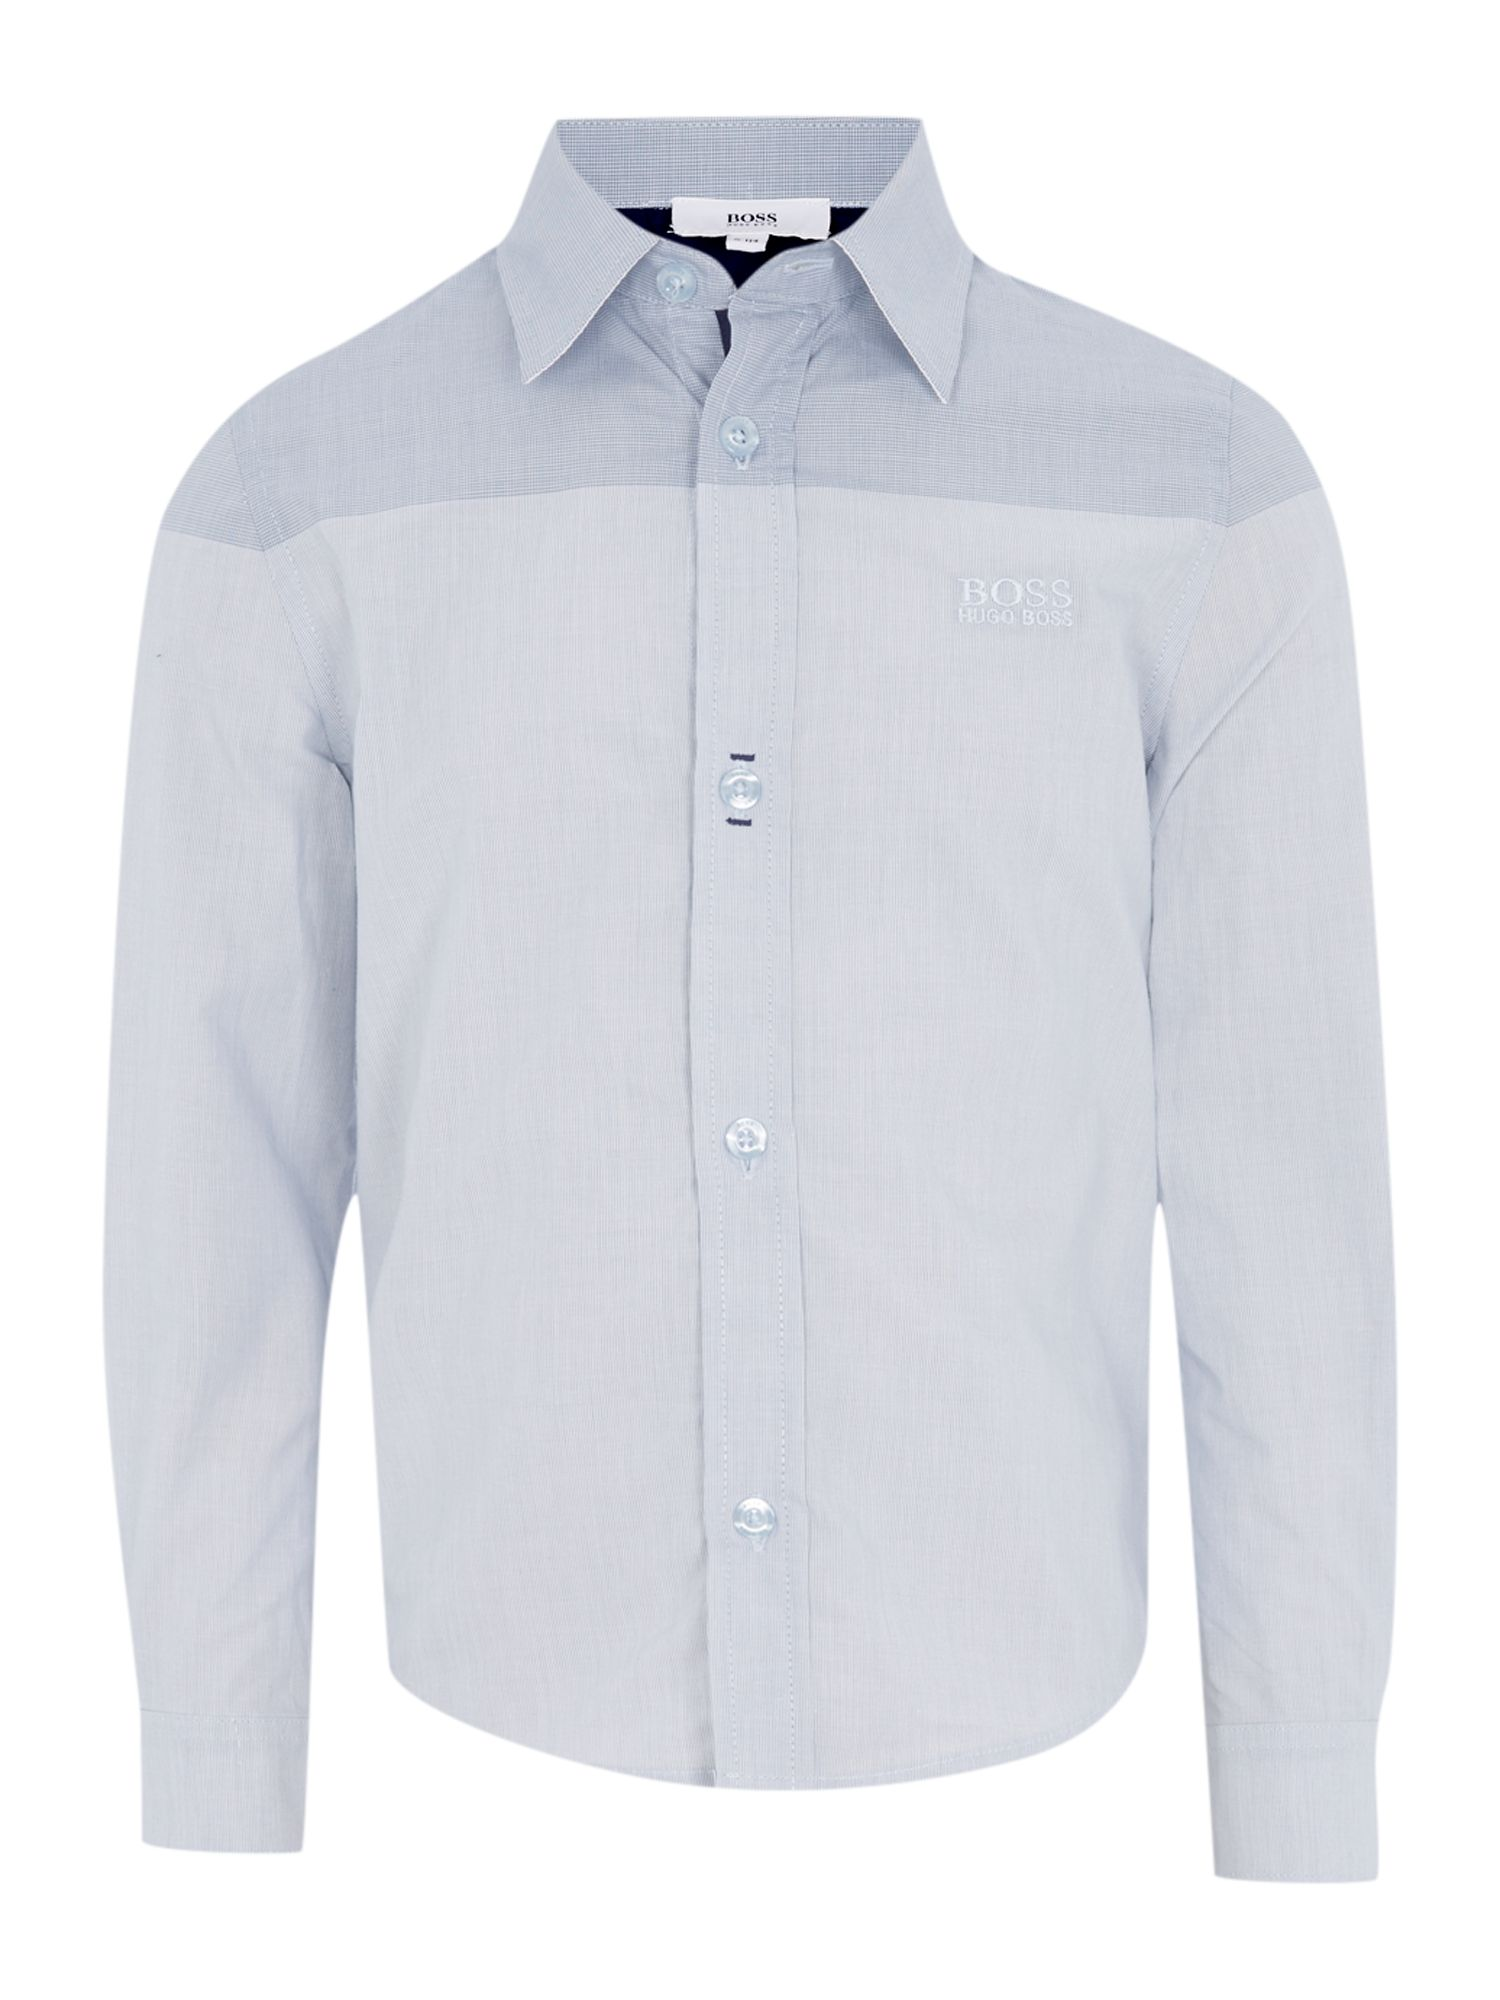 Boys check poplin long sleeve shirt